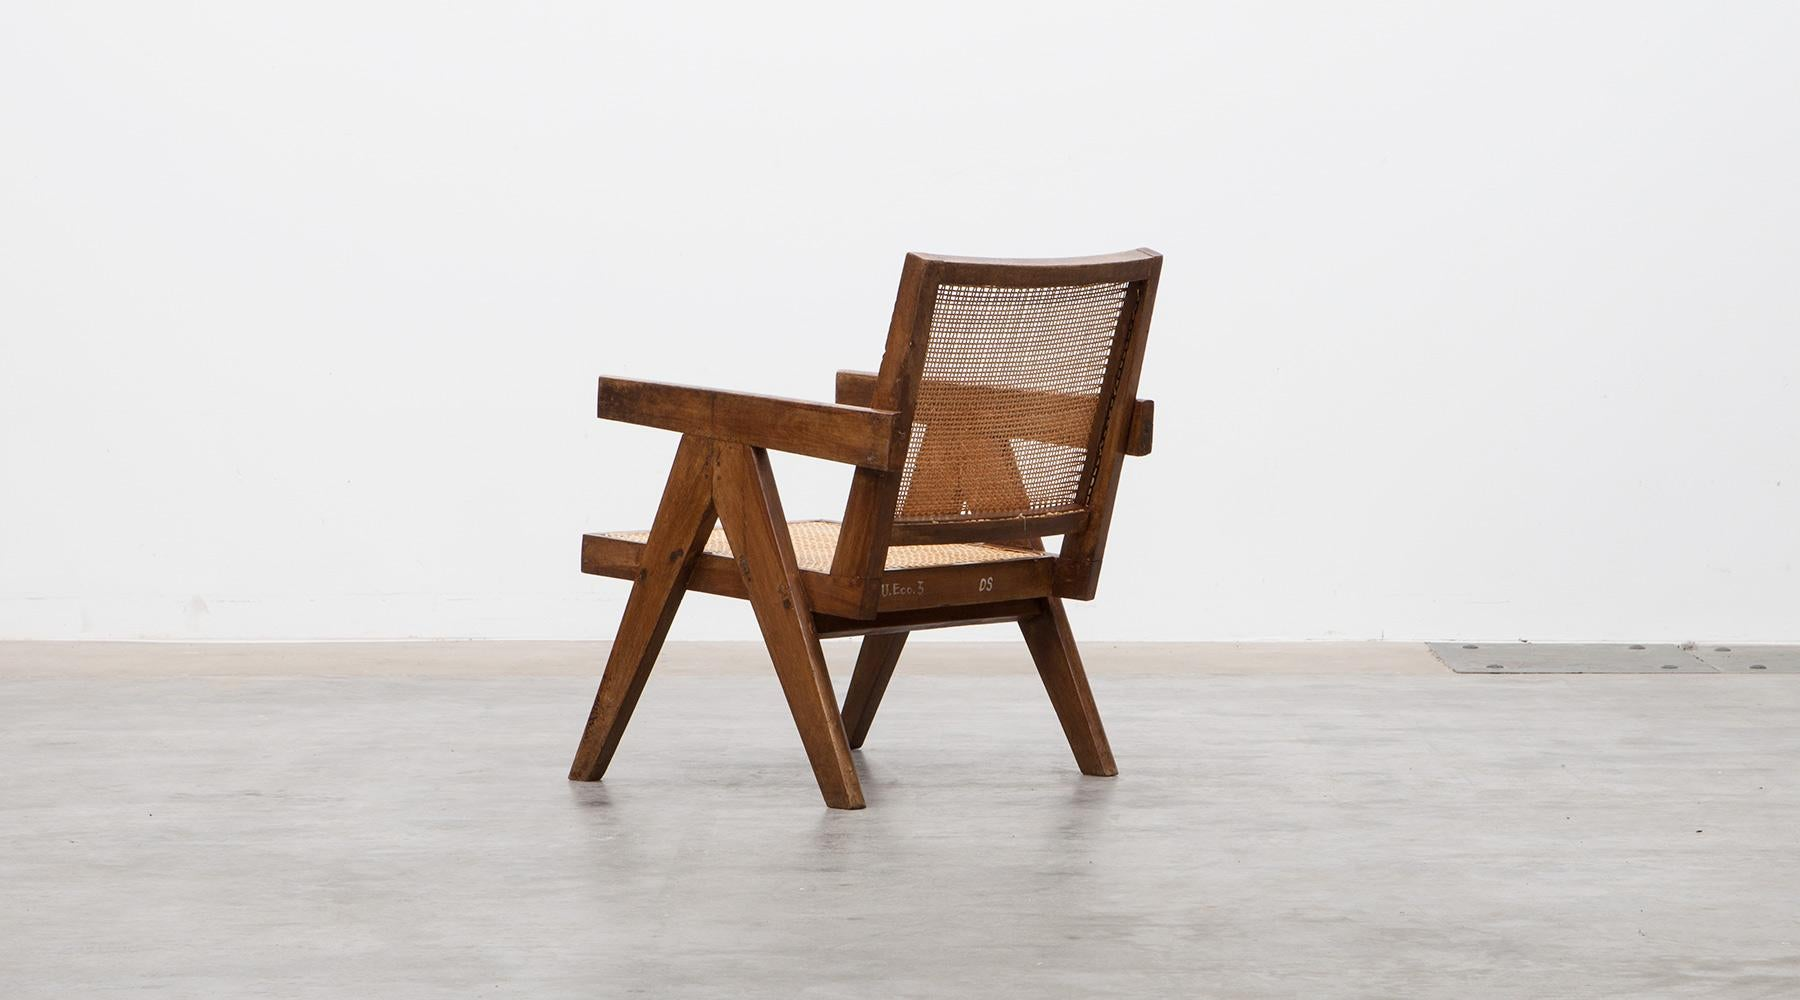 floor rocking chair india ophthalmic exam chairs 1950s brown wooden teak and cane lounge by pierre jeanneret c at 1stdibs